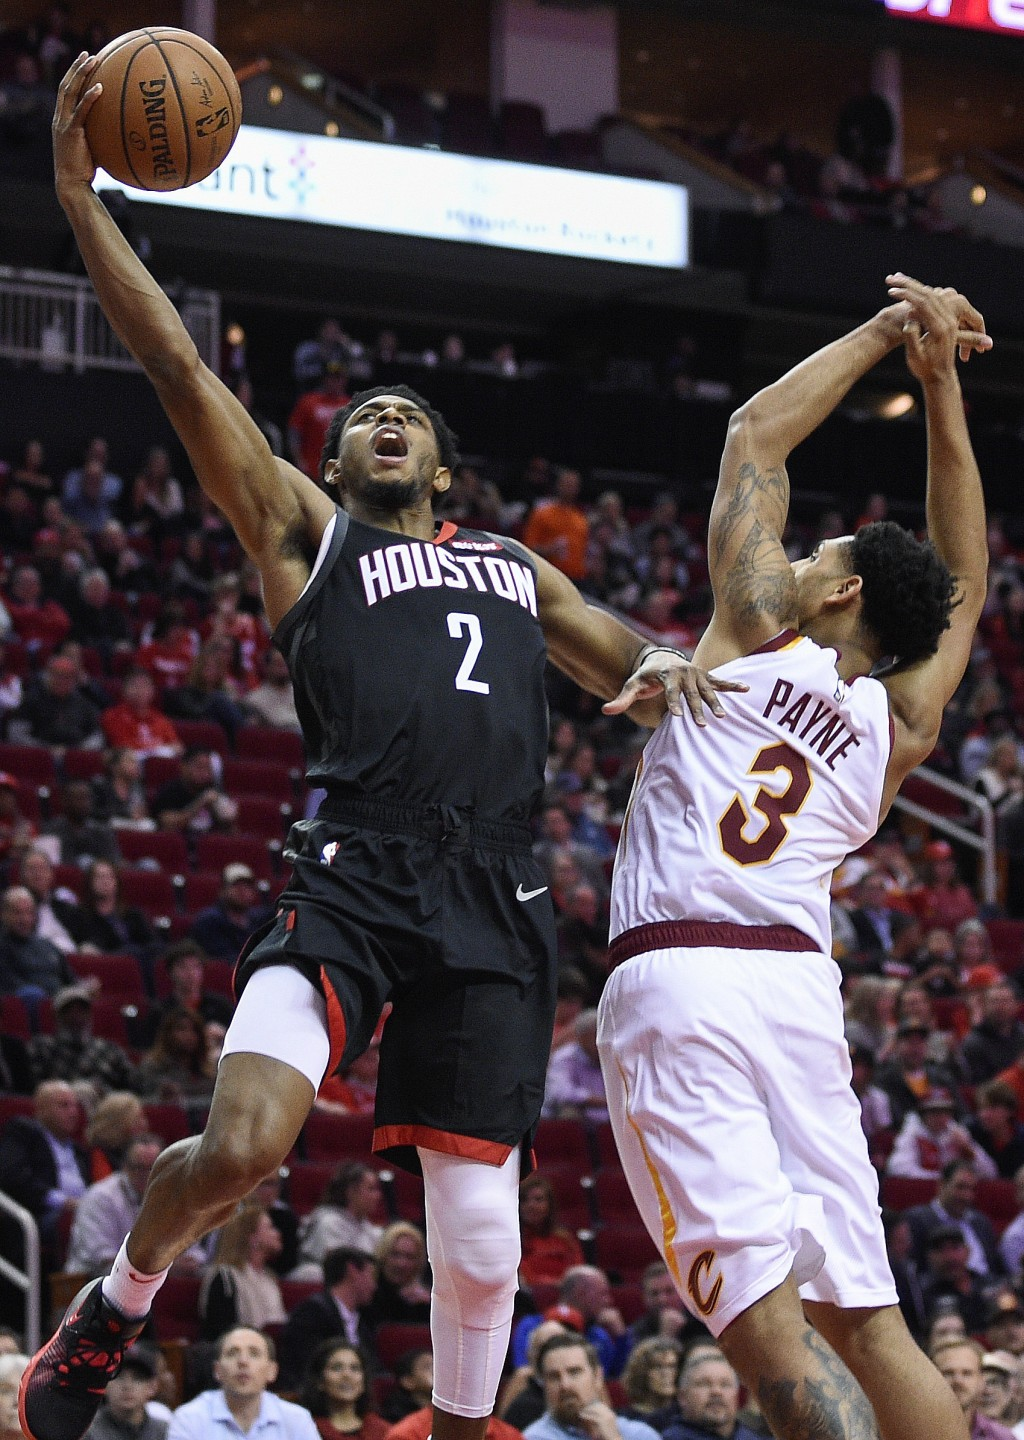 Houston Rockets guard Brandon Knight (2) drives to the basket past Cleveland Cavaliers guard Cameron Payne during the first half of an NBA basketball